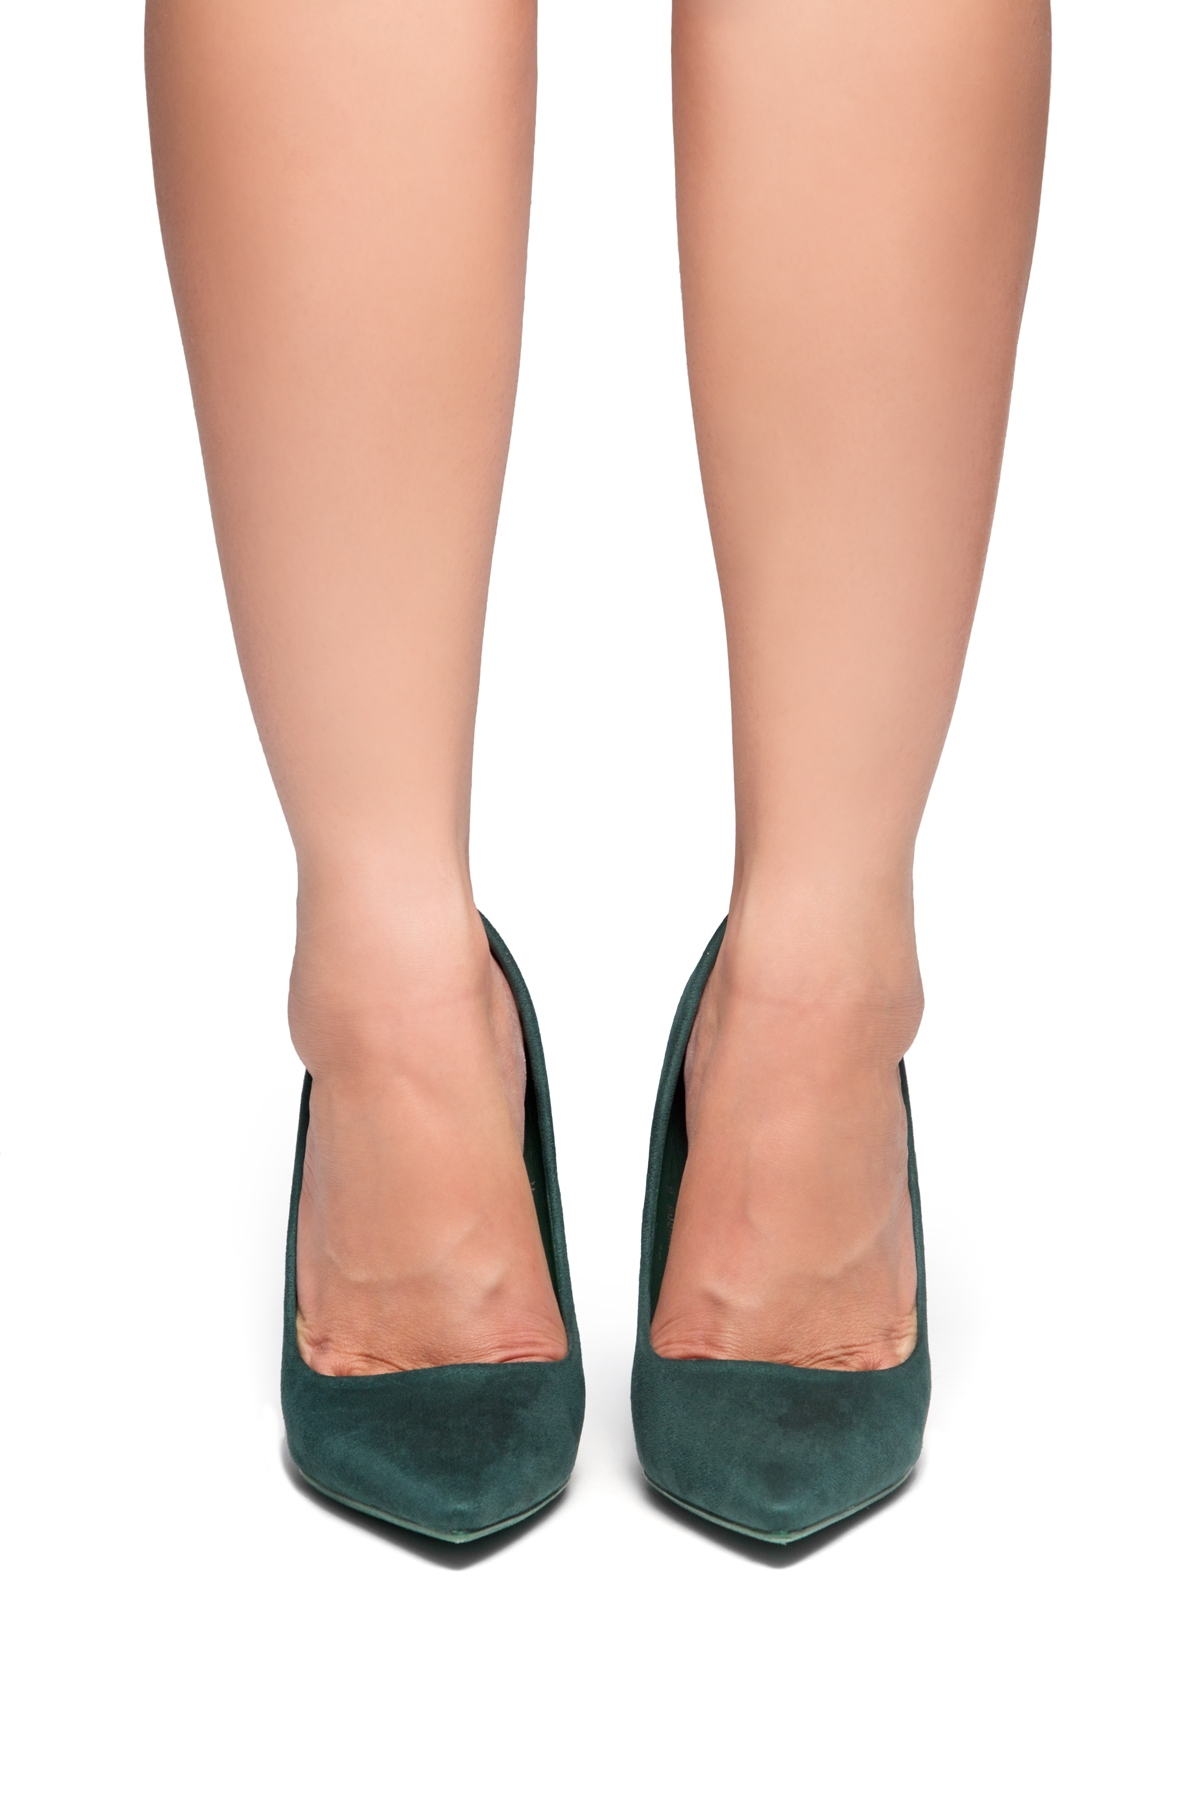 800c1996a1 HerStyle Marneena-Women's Manmade 4-inch Sueded Heel with Lightly Pointed  Toe (F.Green)